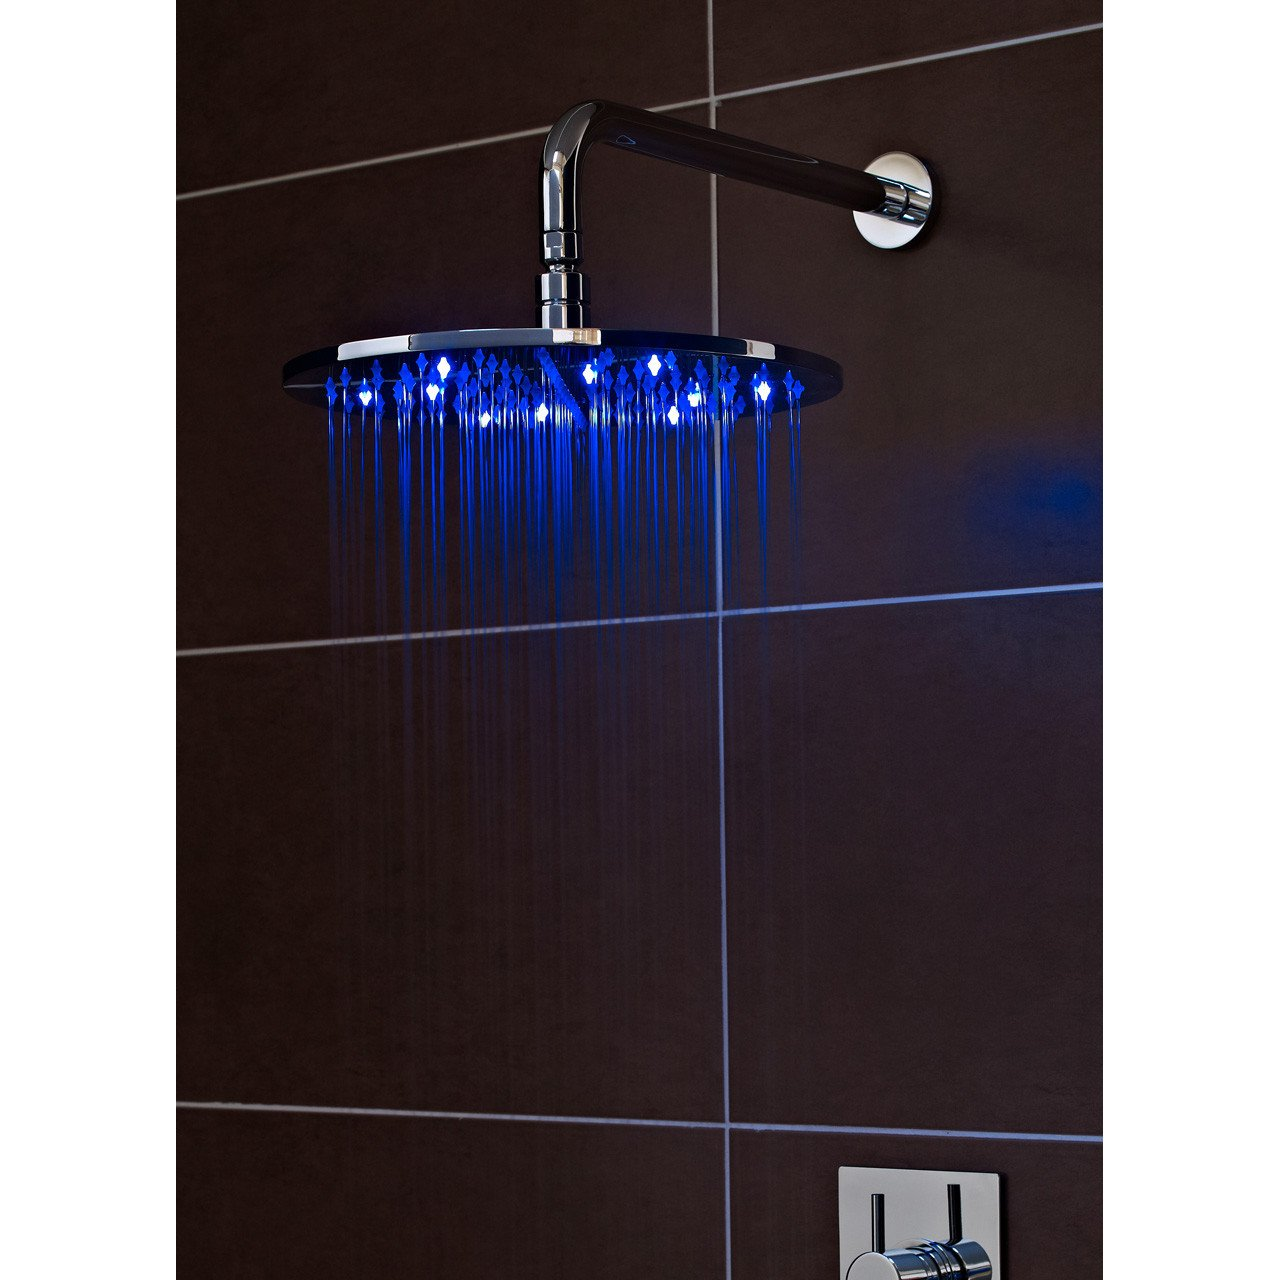 Ultra LED 300mm Round Fixed Shower Head - STY071